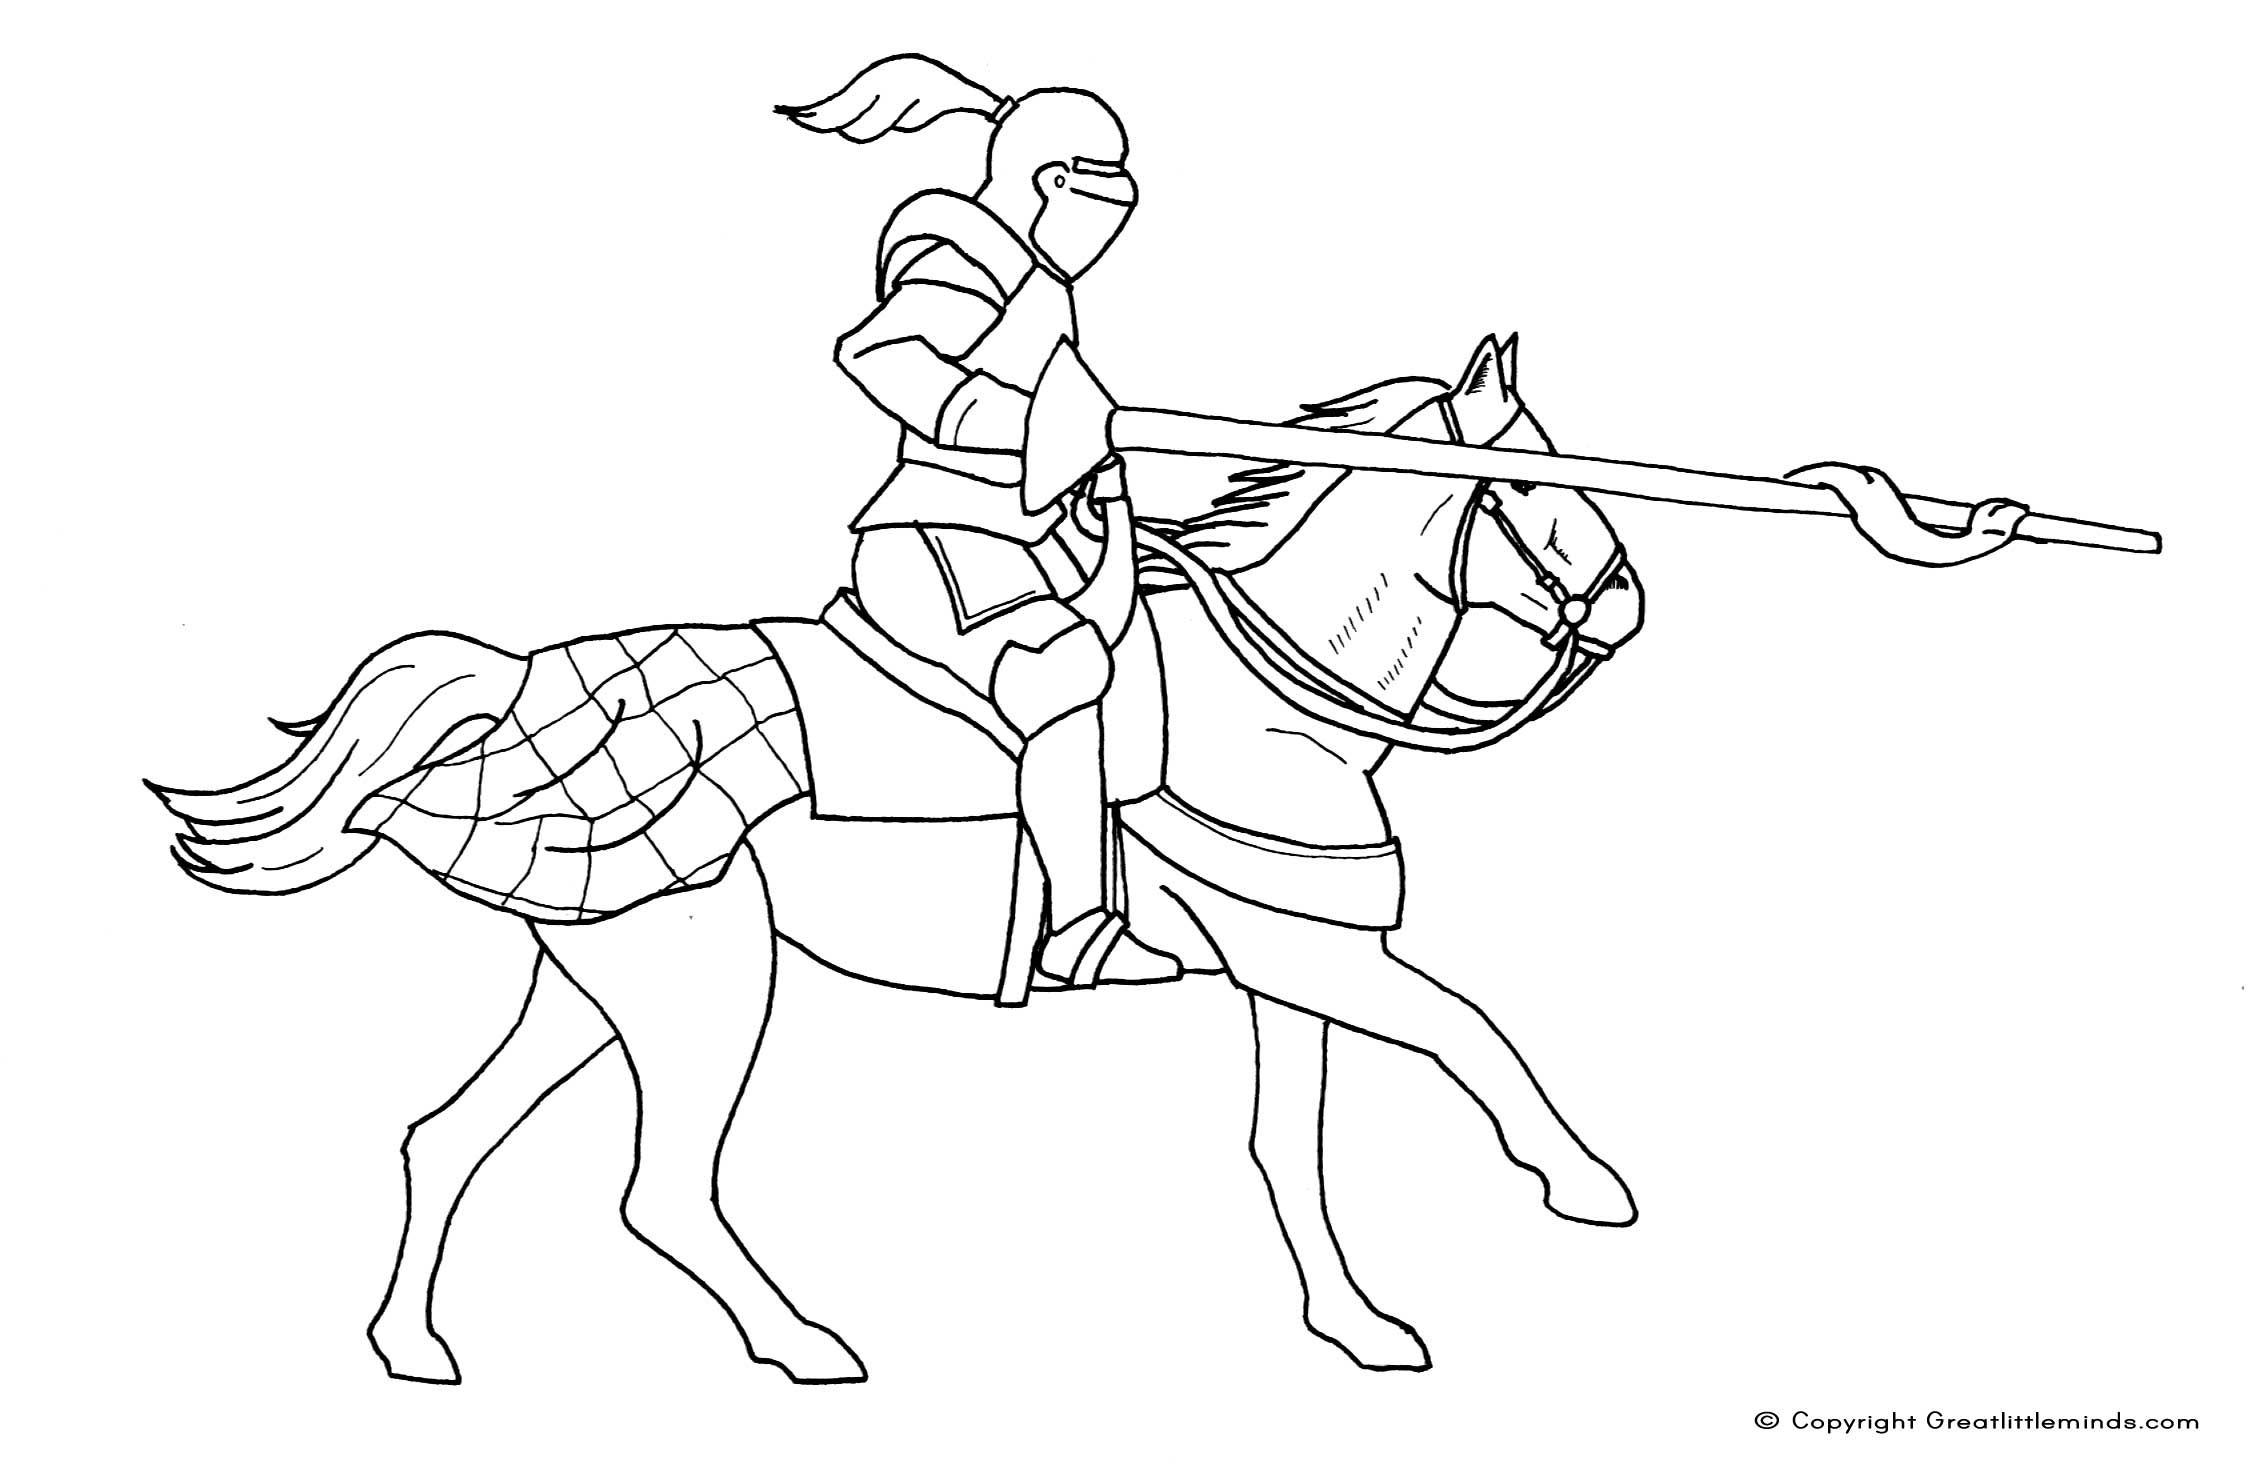 how to draw a knight on a horse learn to draw knights draw knight on horse horse a a how on draw knight to